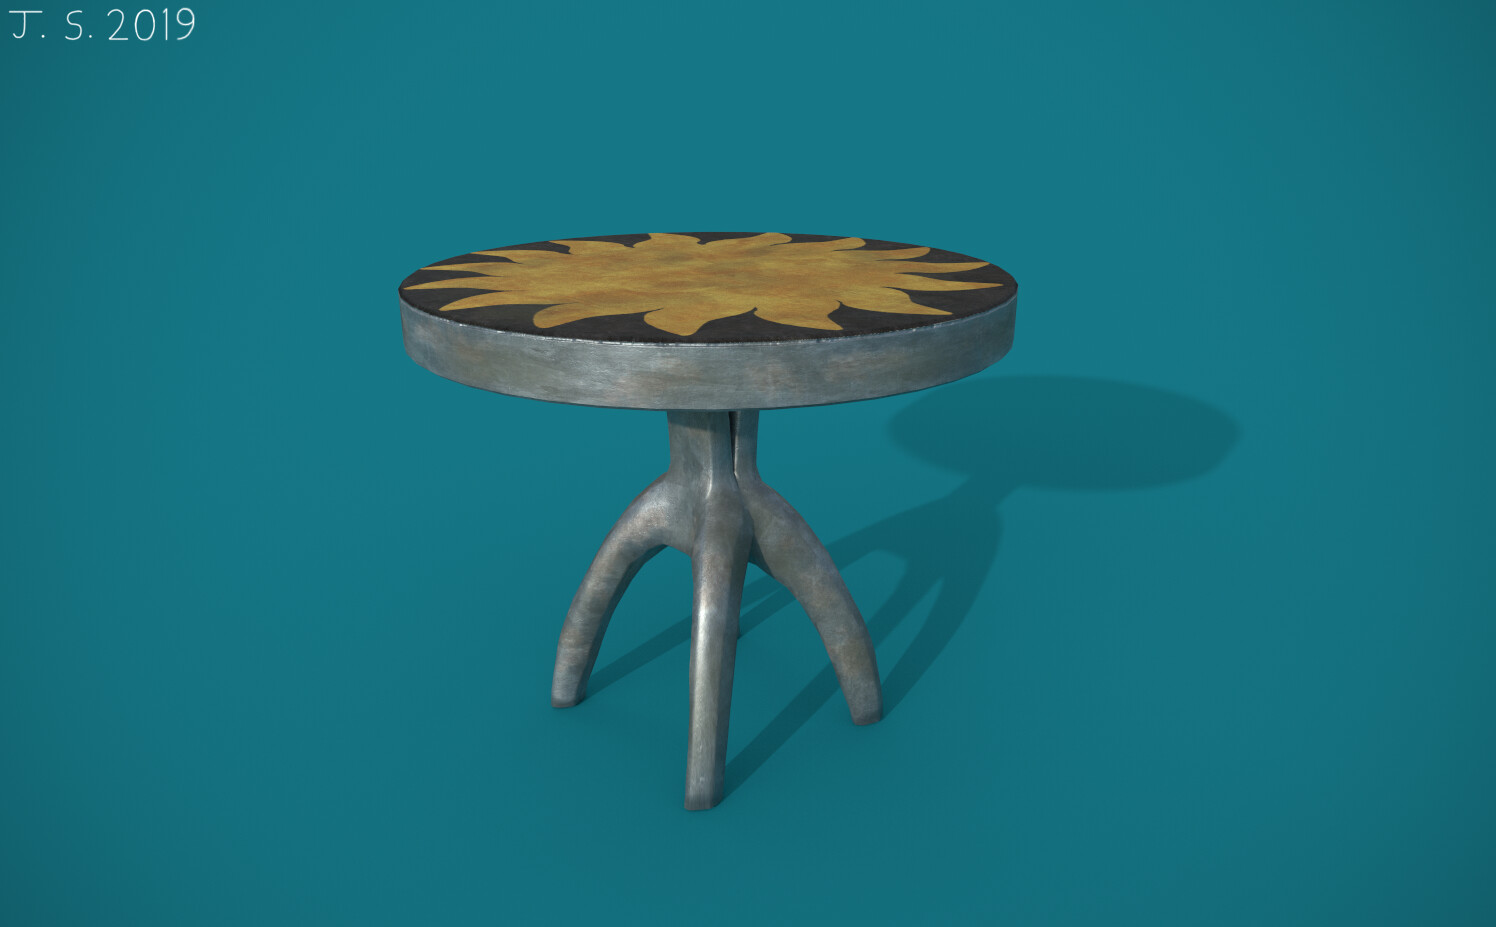 Aztec-Styled Table Substance Painter Render